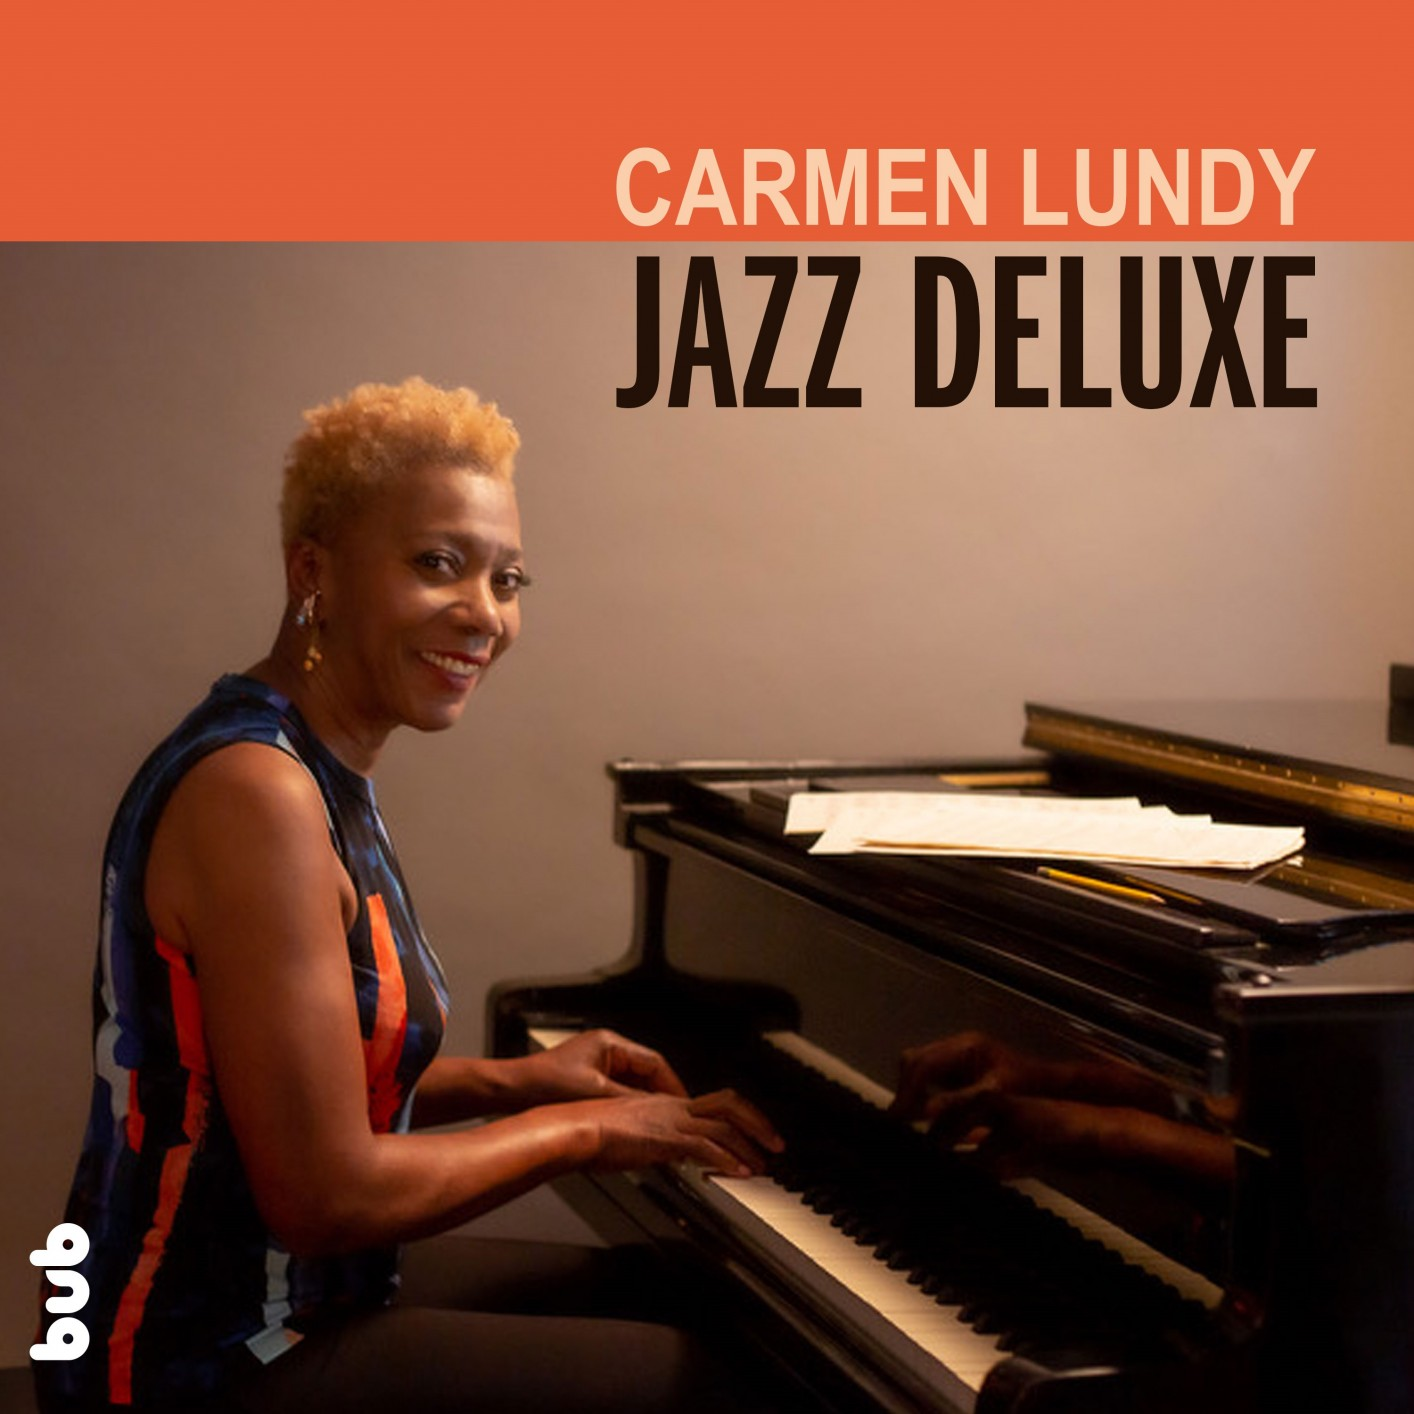 CARMEN LUNDY - Jazz Deluxe cover